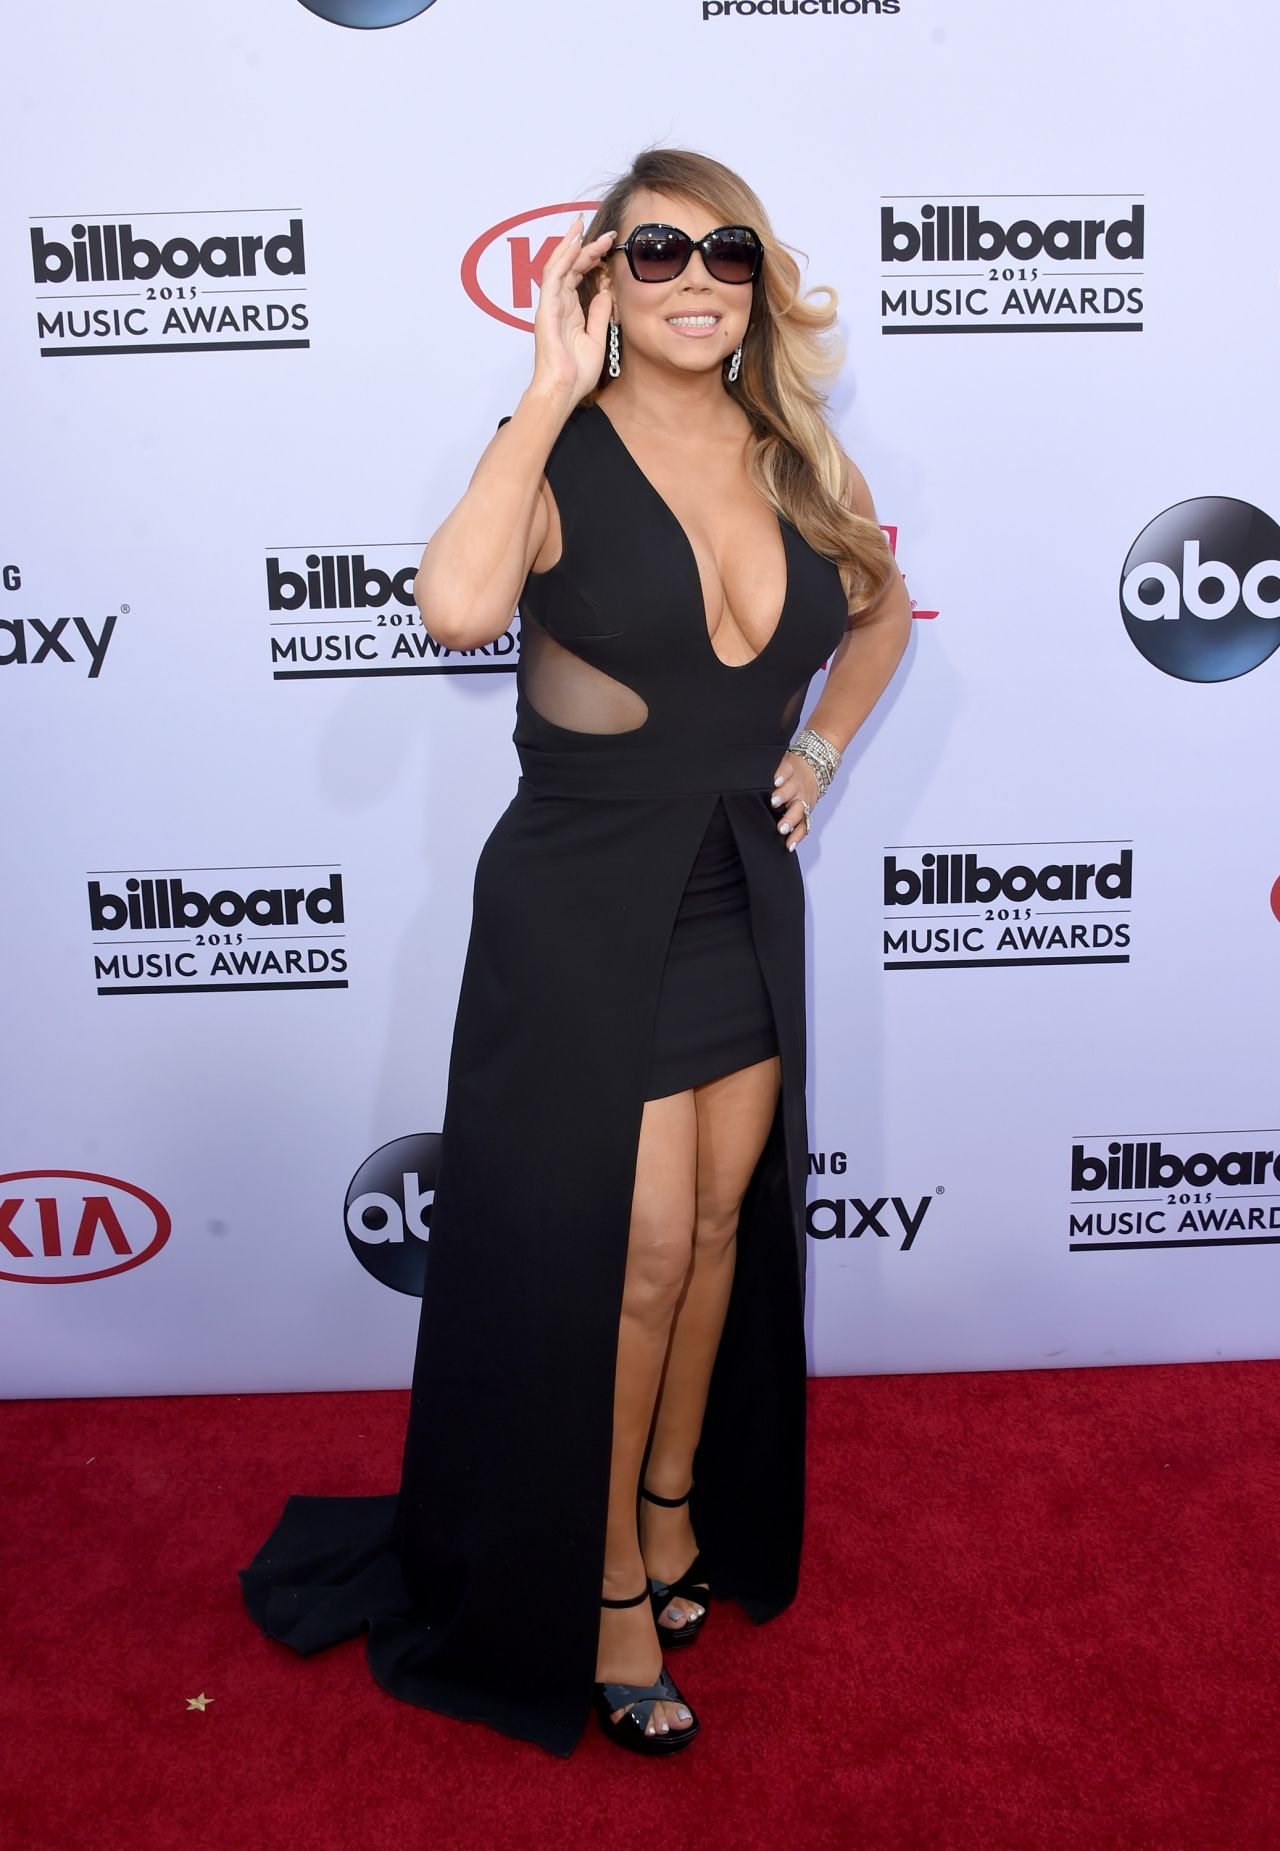 Billboard Music Awards 2015 - Complete Nominations List